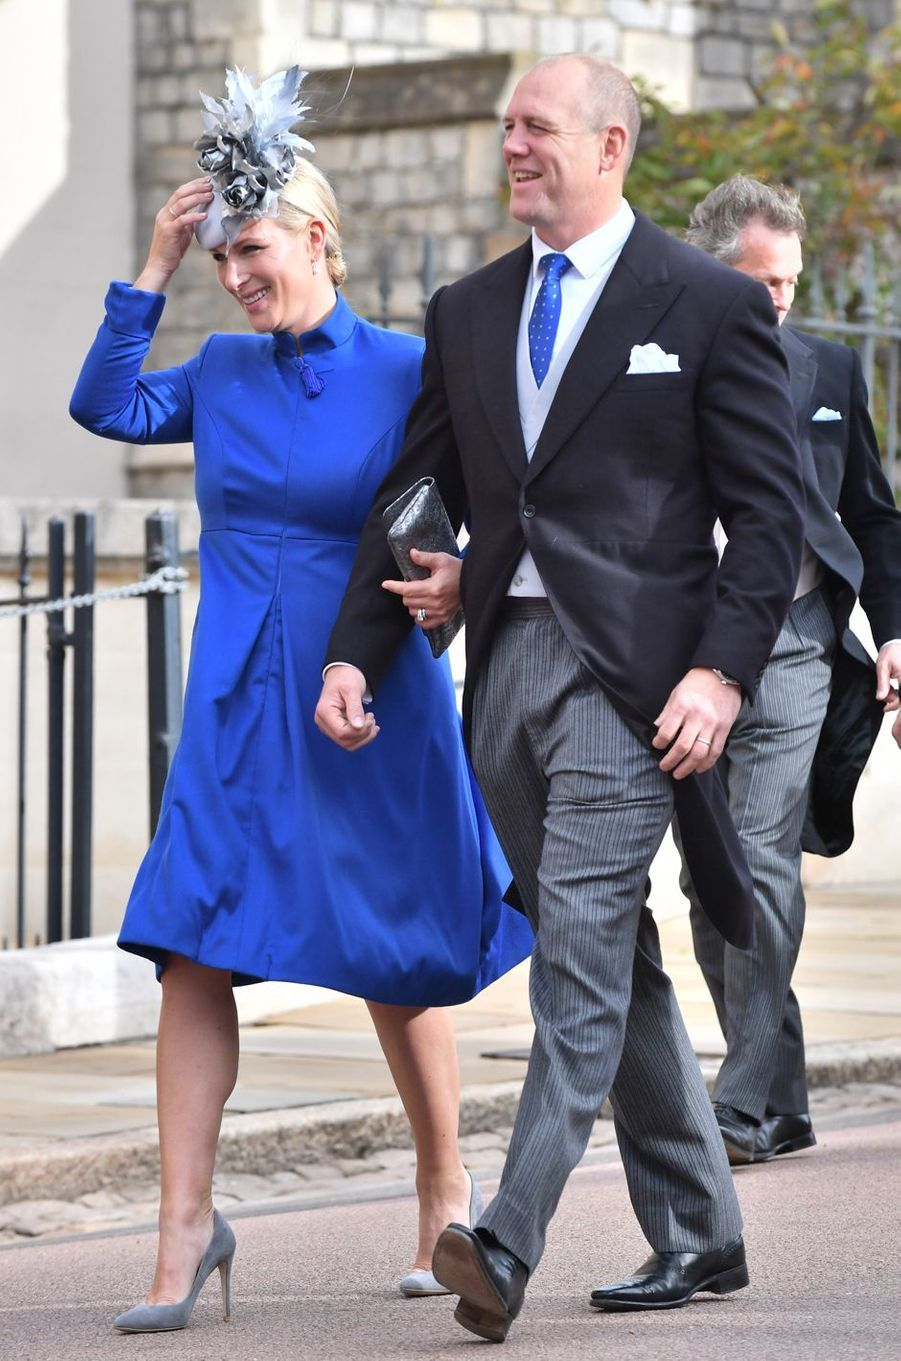 Zara Phillips-Tindall à Windsor, le 12 octobre 2018